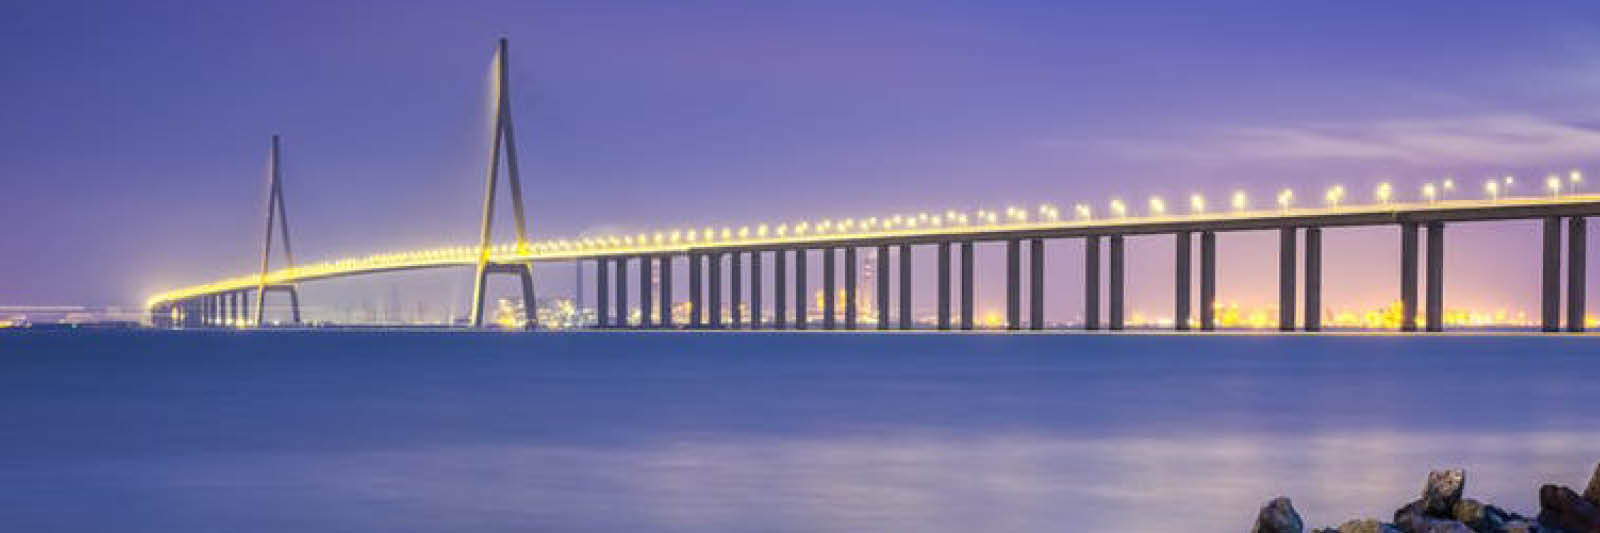 BORIS JOHNSON'S ENGLISH CHANNEL BRIDGE: AN ENGINEERING EXPERT'S VIEW